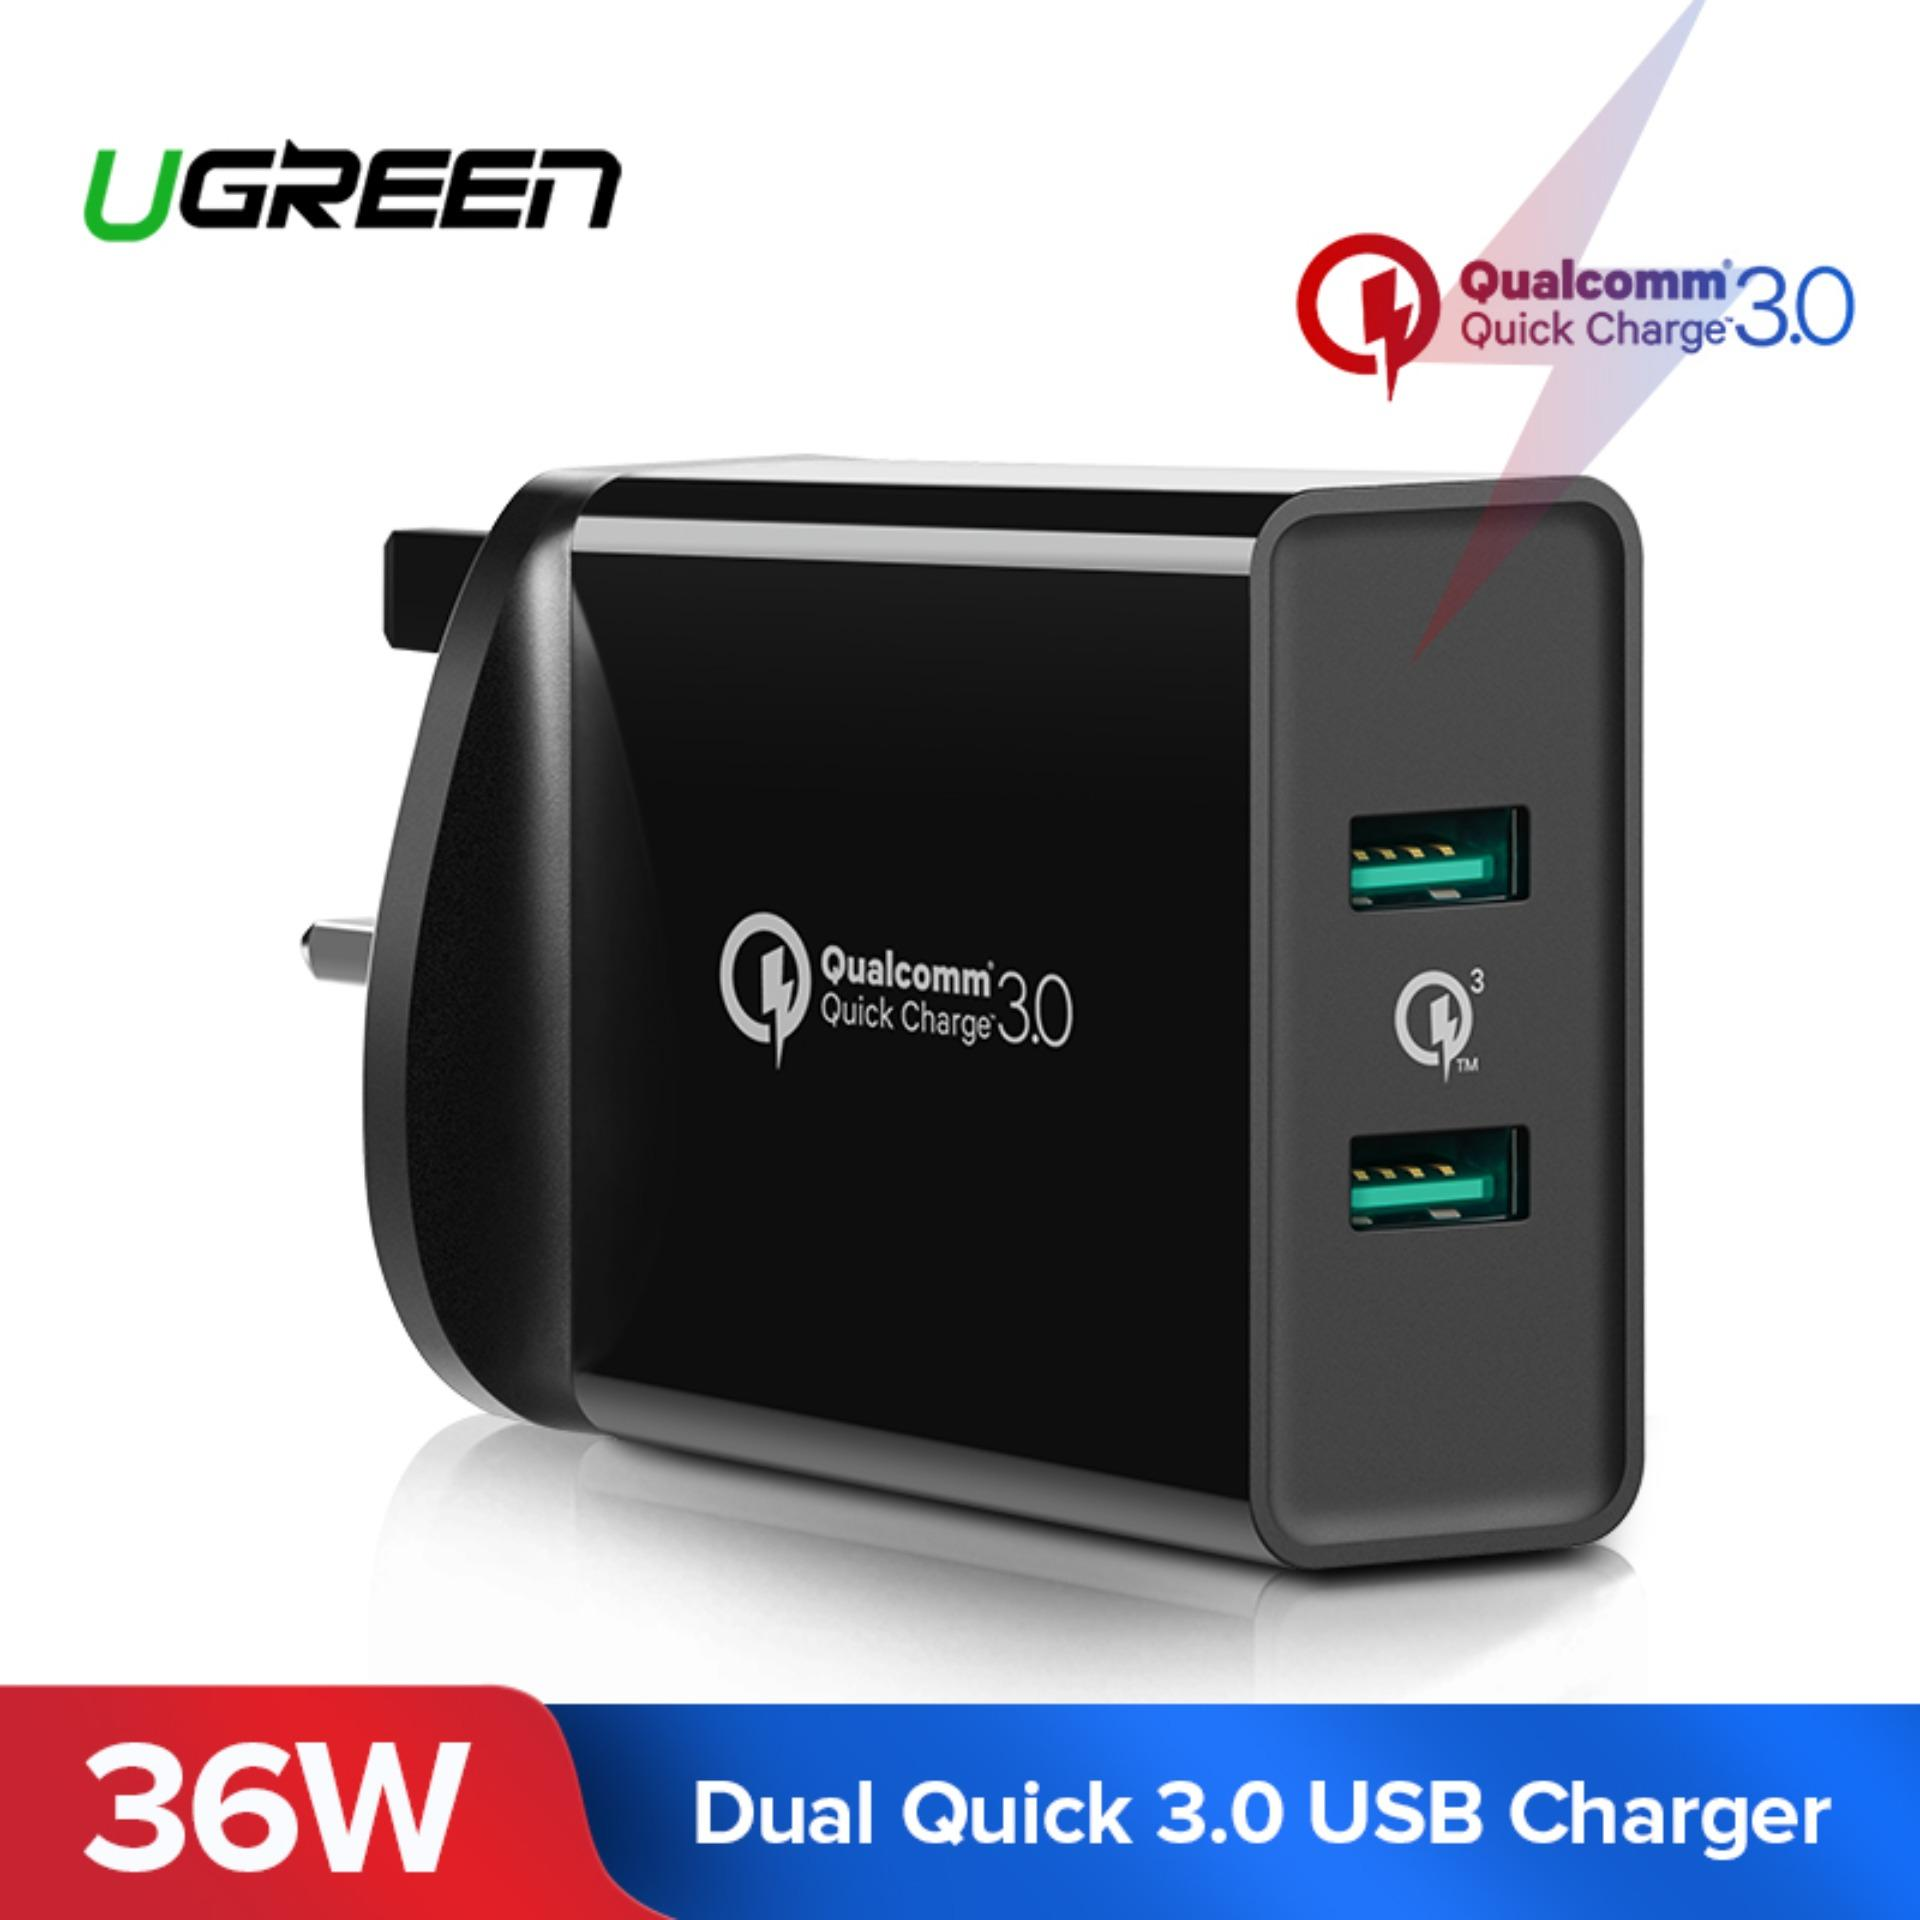 Ugreen Quick Charge 3.0 Usb Charger, 36w Dual Usb Port Qc 3.0 Wall Charger Adapter Fcp Usb Fast Charge For Iphone X 8, Ipad, Samsung S9 S9+ S8 S8+ S7, Huawei Mate 10 P10, Oneplus 5t, Nexus 5x 6p Etc-Uk Plug By Ugreen Flagship Store.